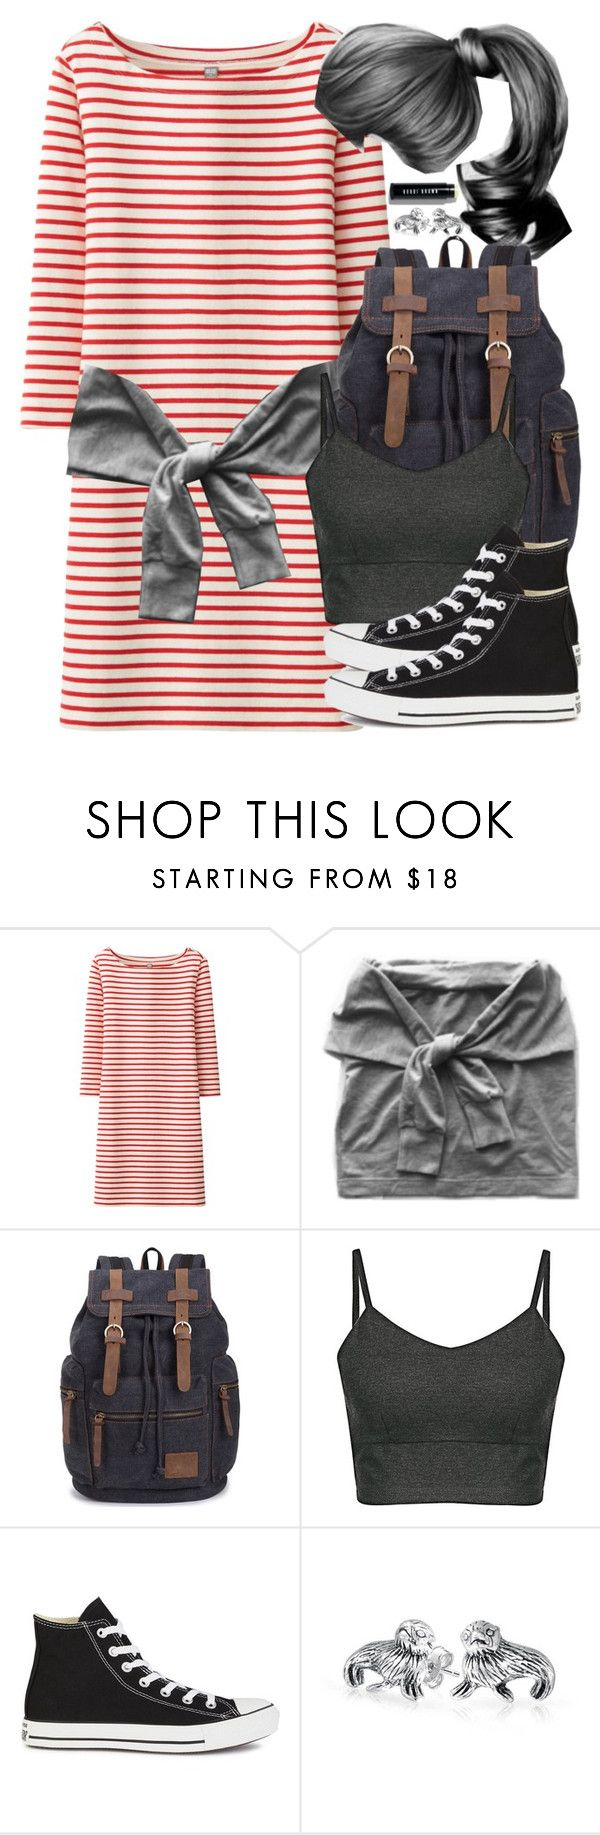 """Ron Weasley Inspired Outfit w/ Requested Dress"" by hpstyle ❤ liked on Polyvore featuring Uniqlo, Nina B, Converse, Bling Jewelry and Bobbi Brown Cosmetics"